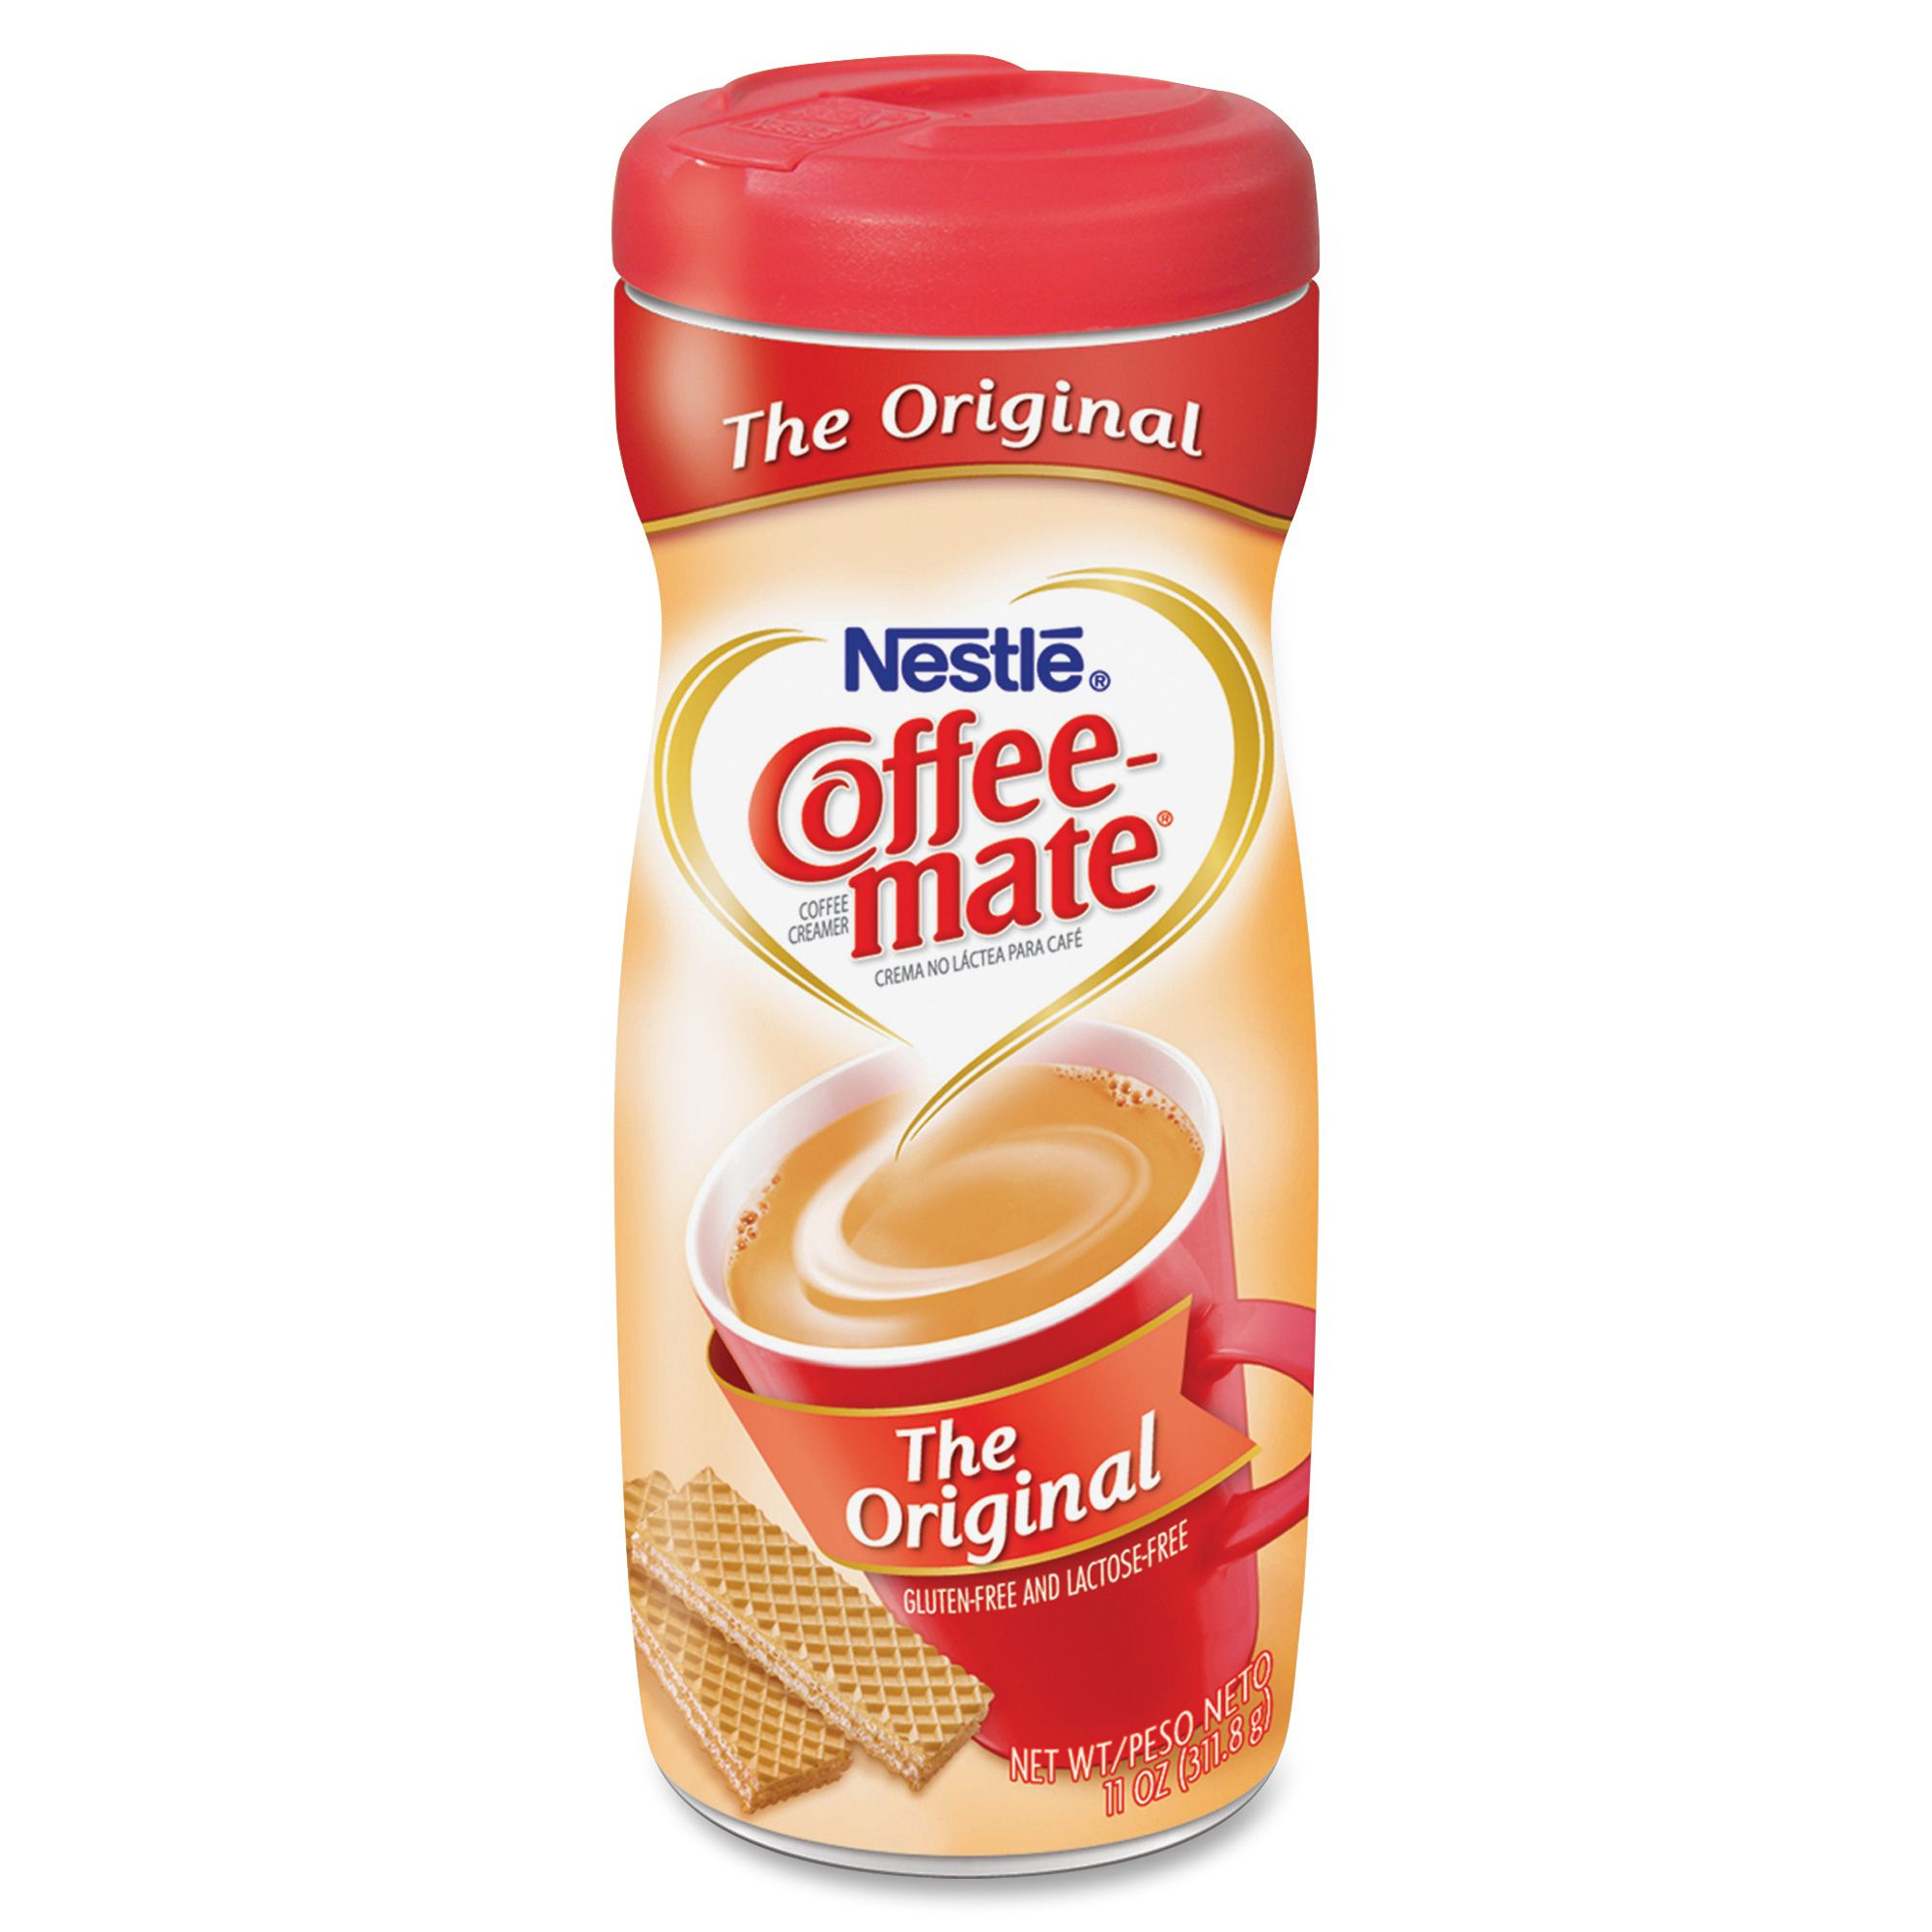 31++ What is coffee mate made of ideas in 2021